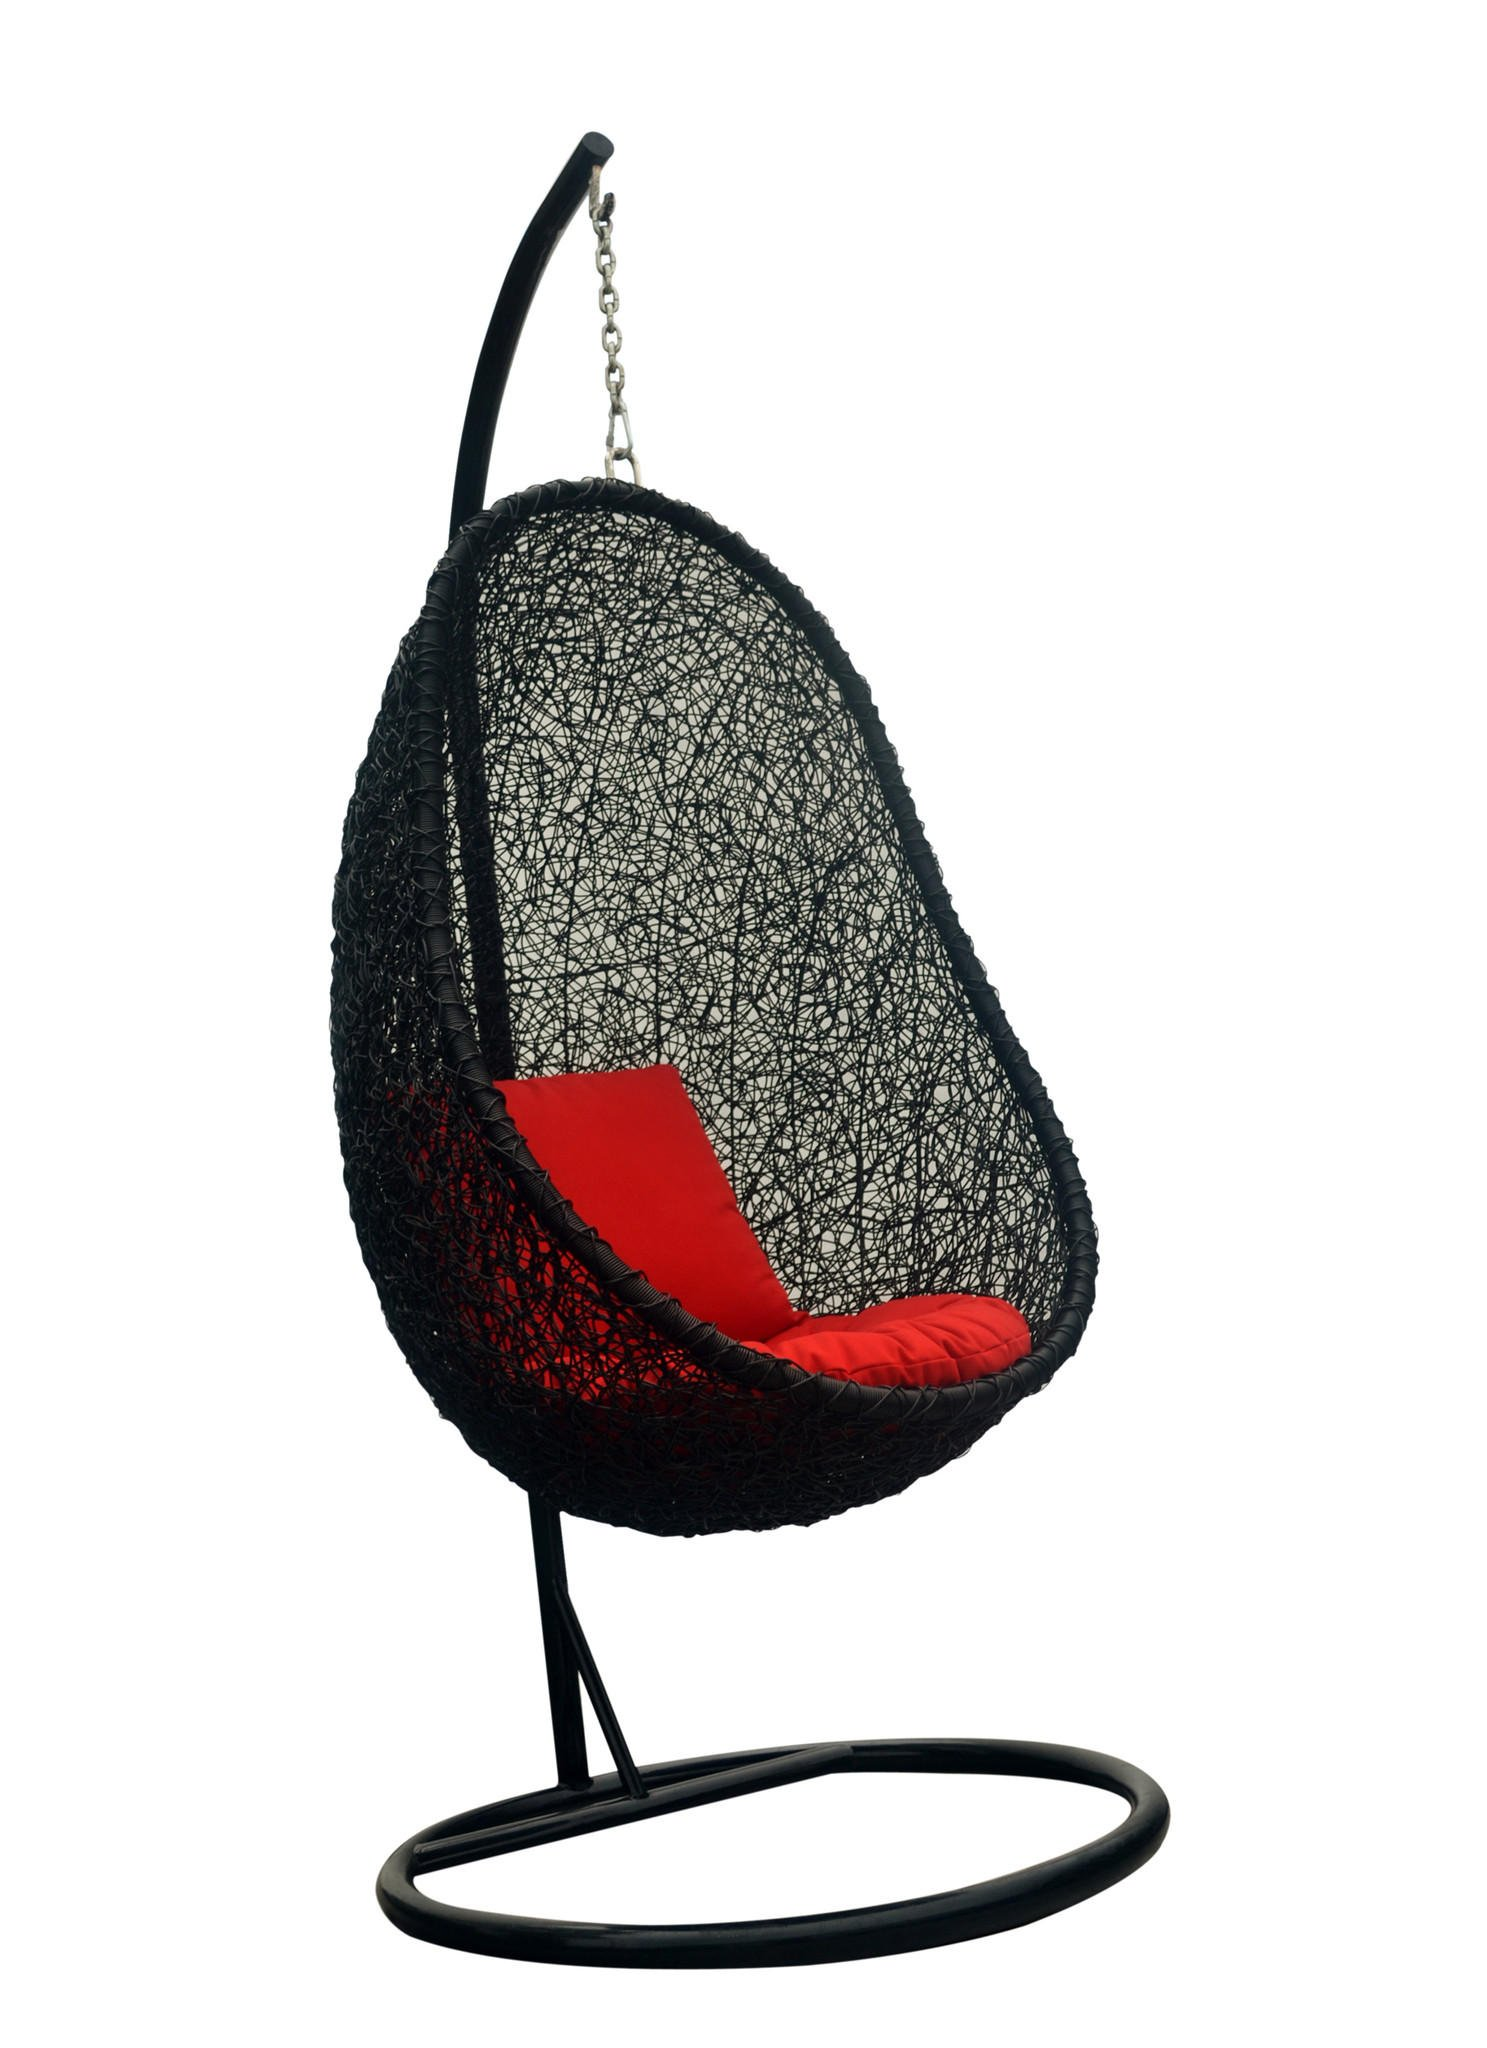 Egg Swing Chair from Stylish Outdoors